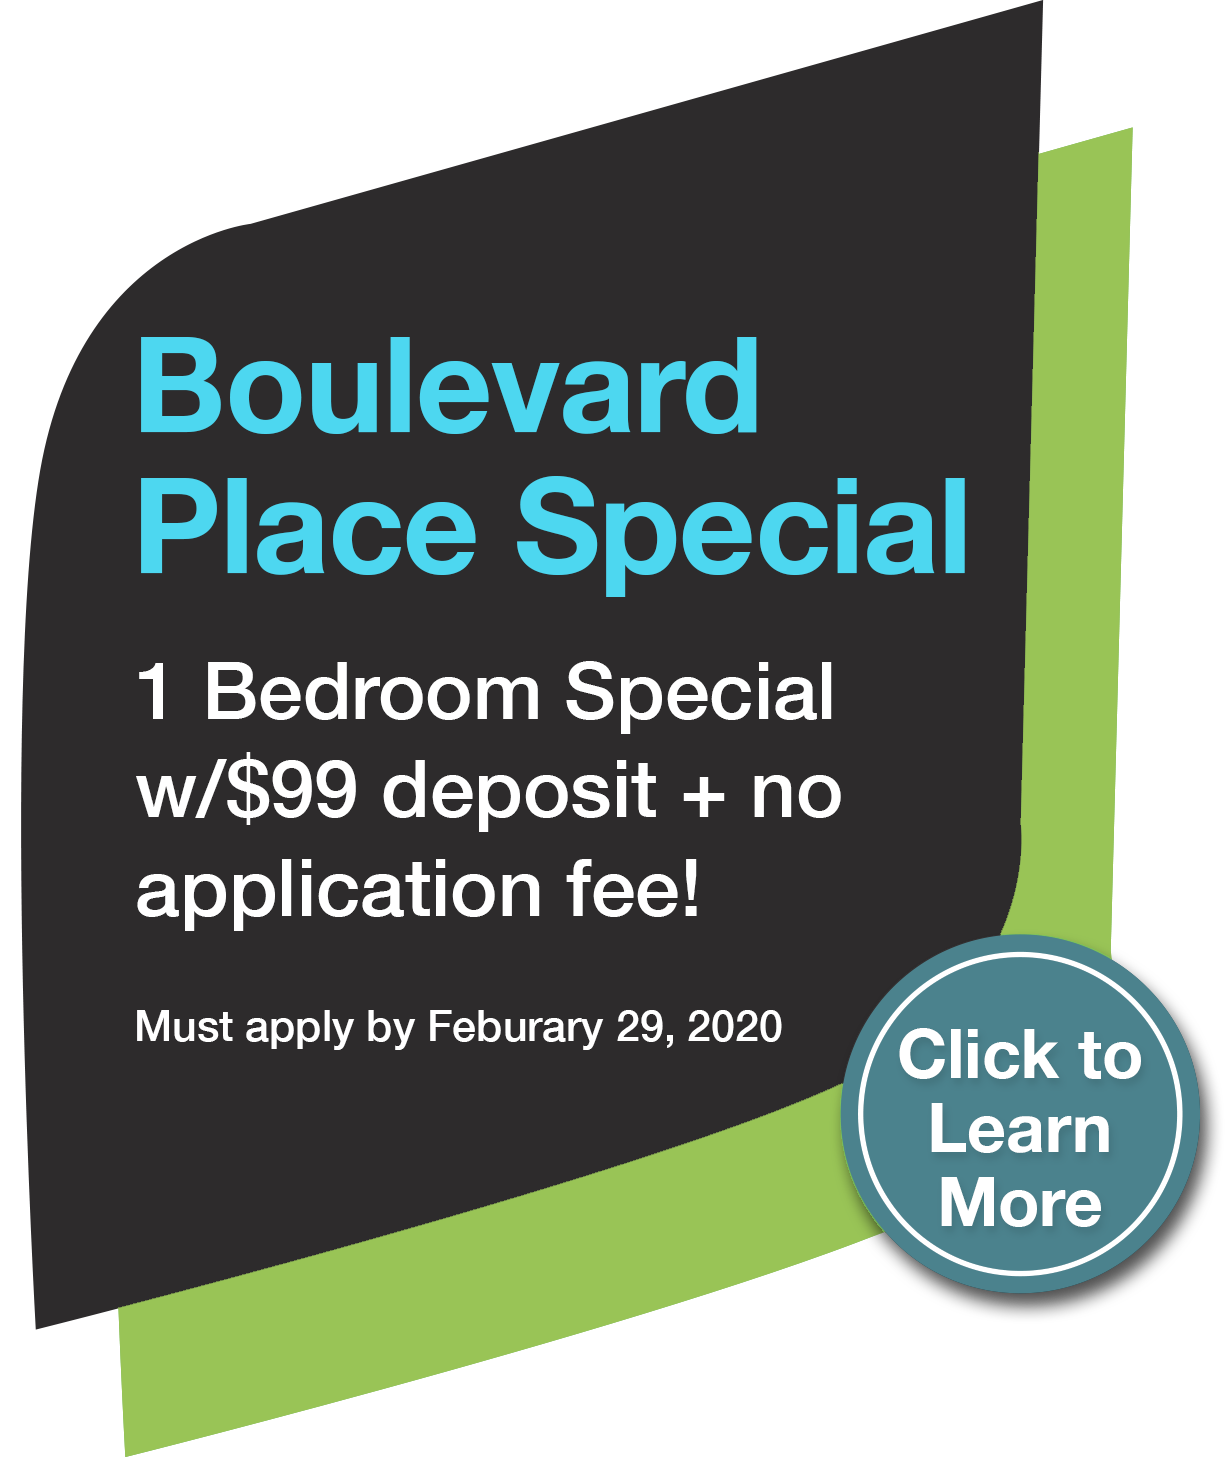 Boulevard Place Special Offer